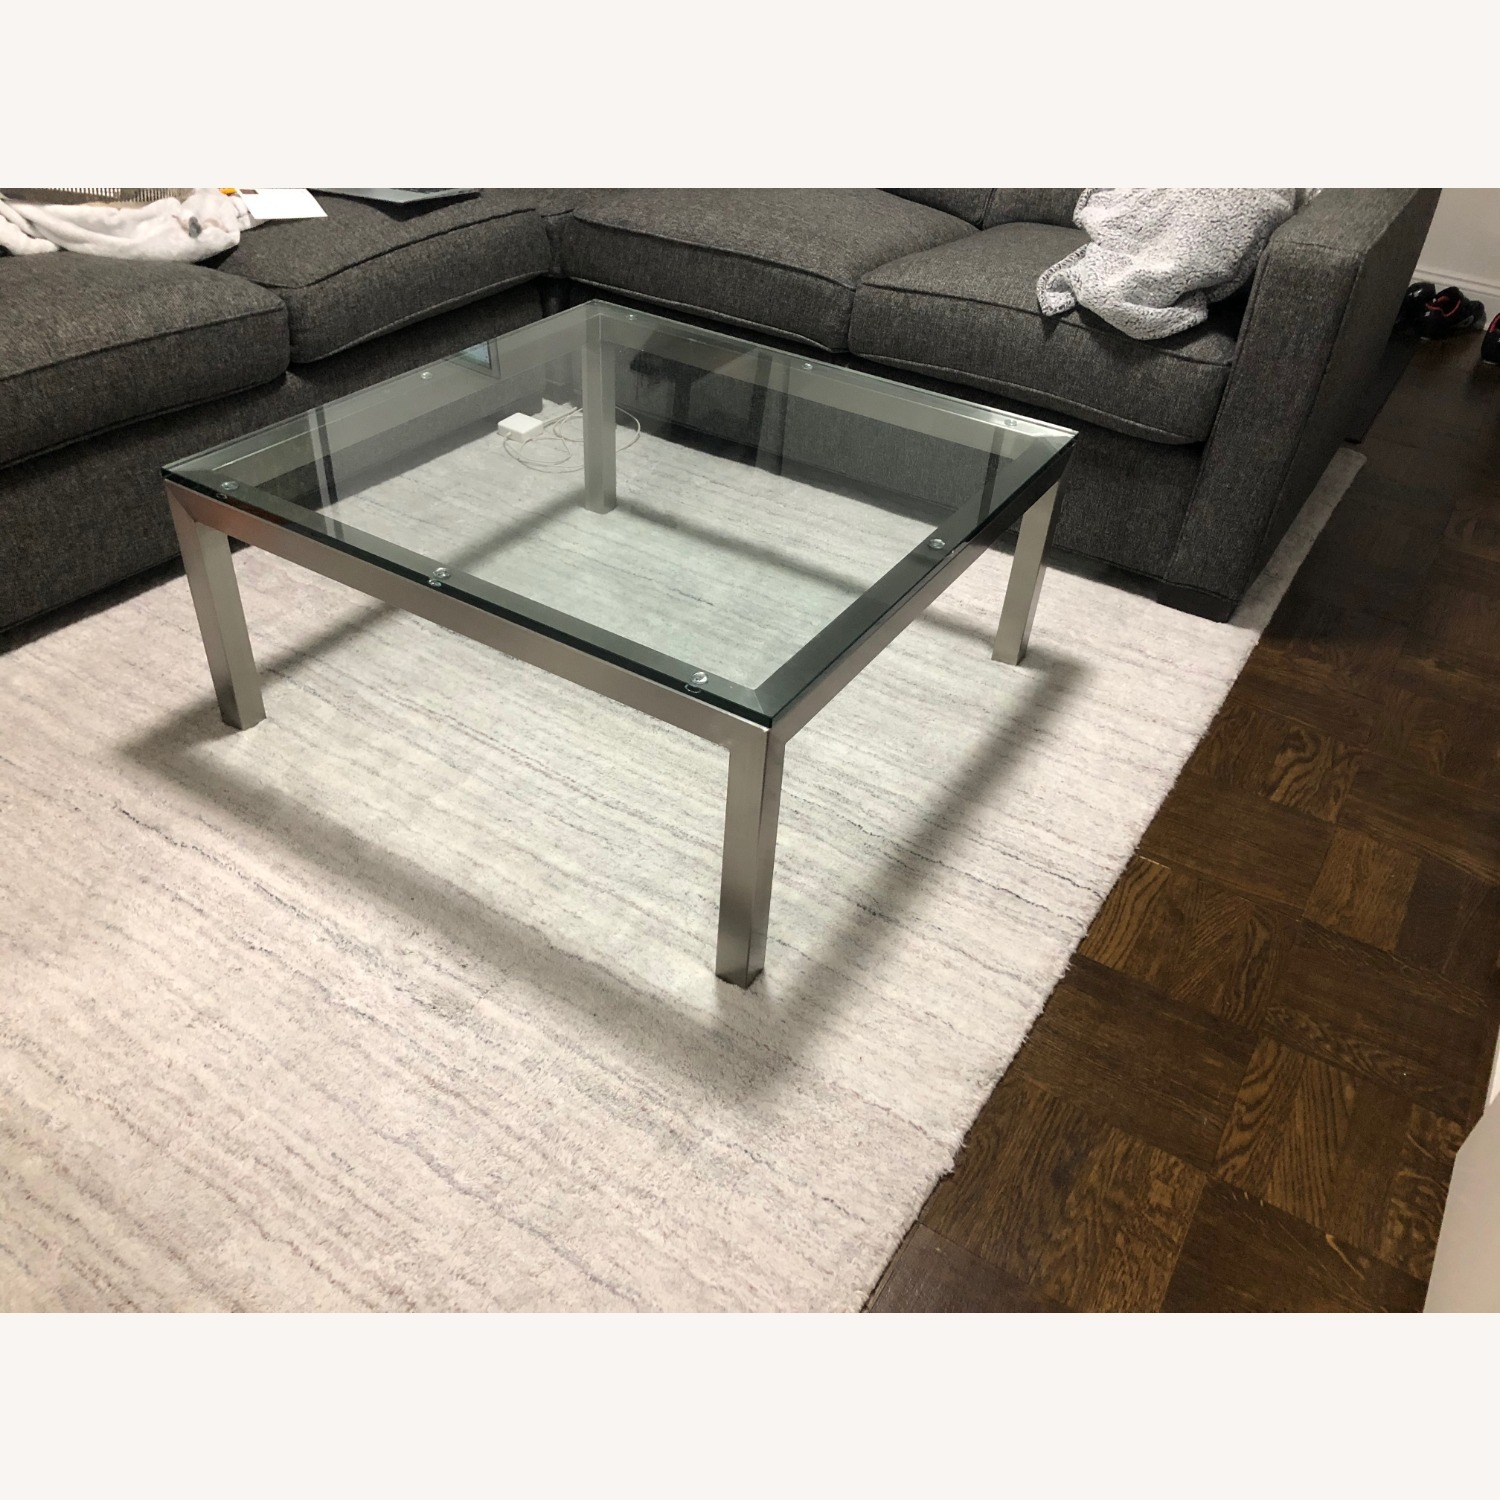 Crate & Barrel Parson's Glass Square Coffee Table - image-1